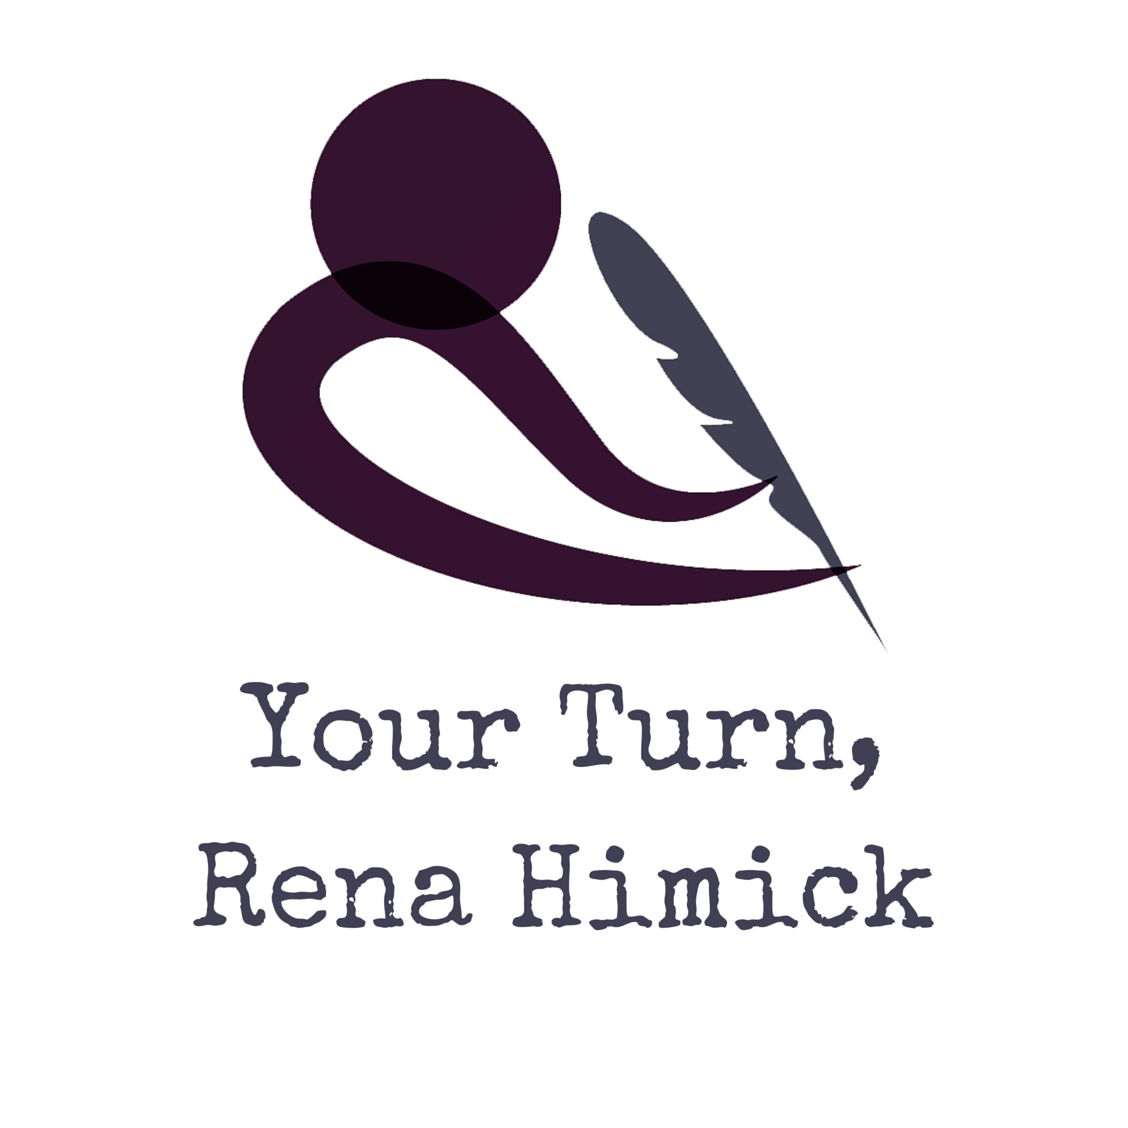 Reaching for Holiness, by Rena Himick